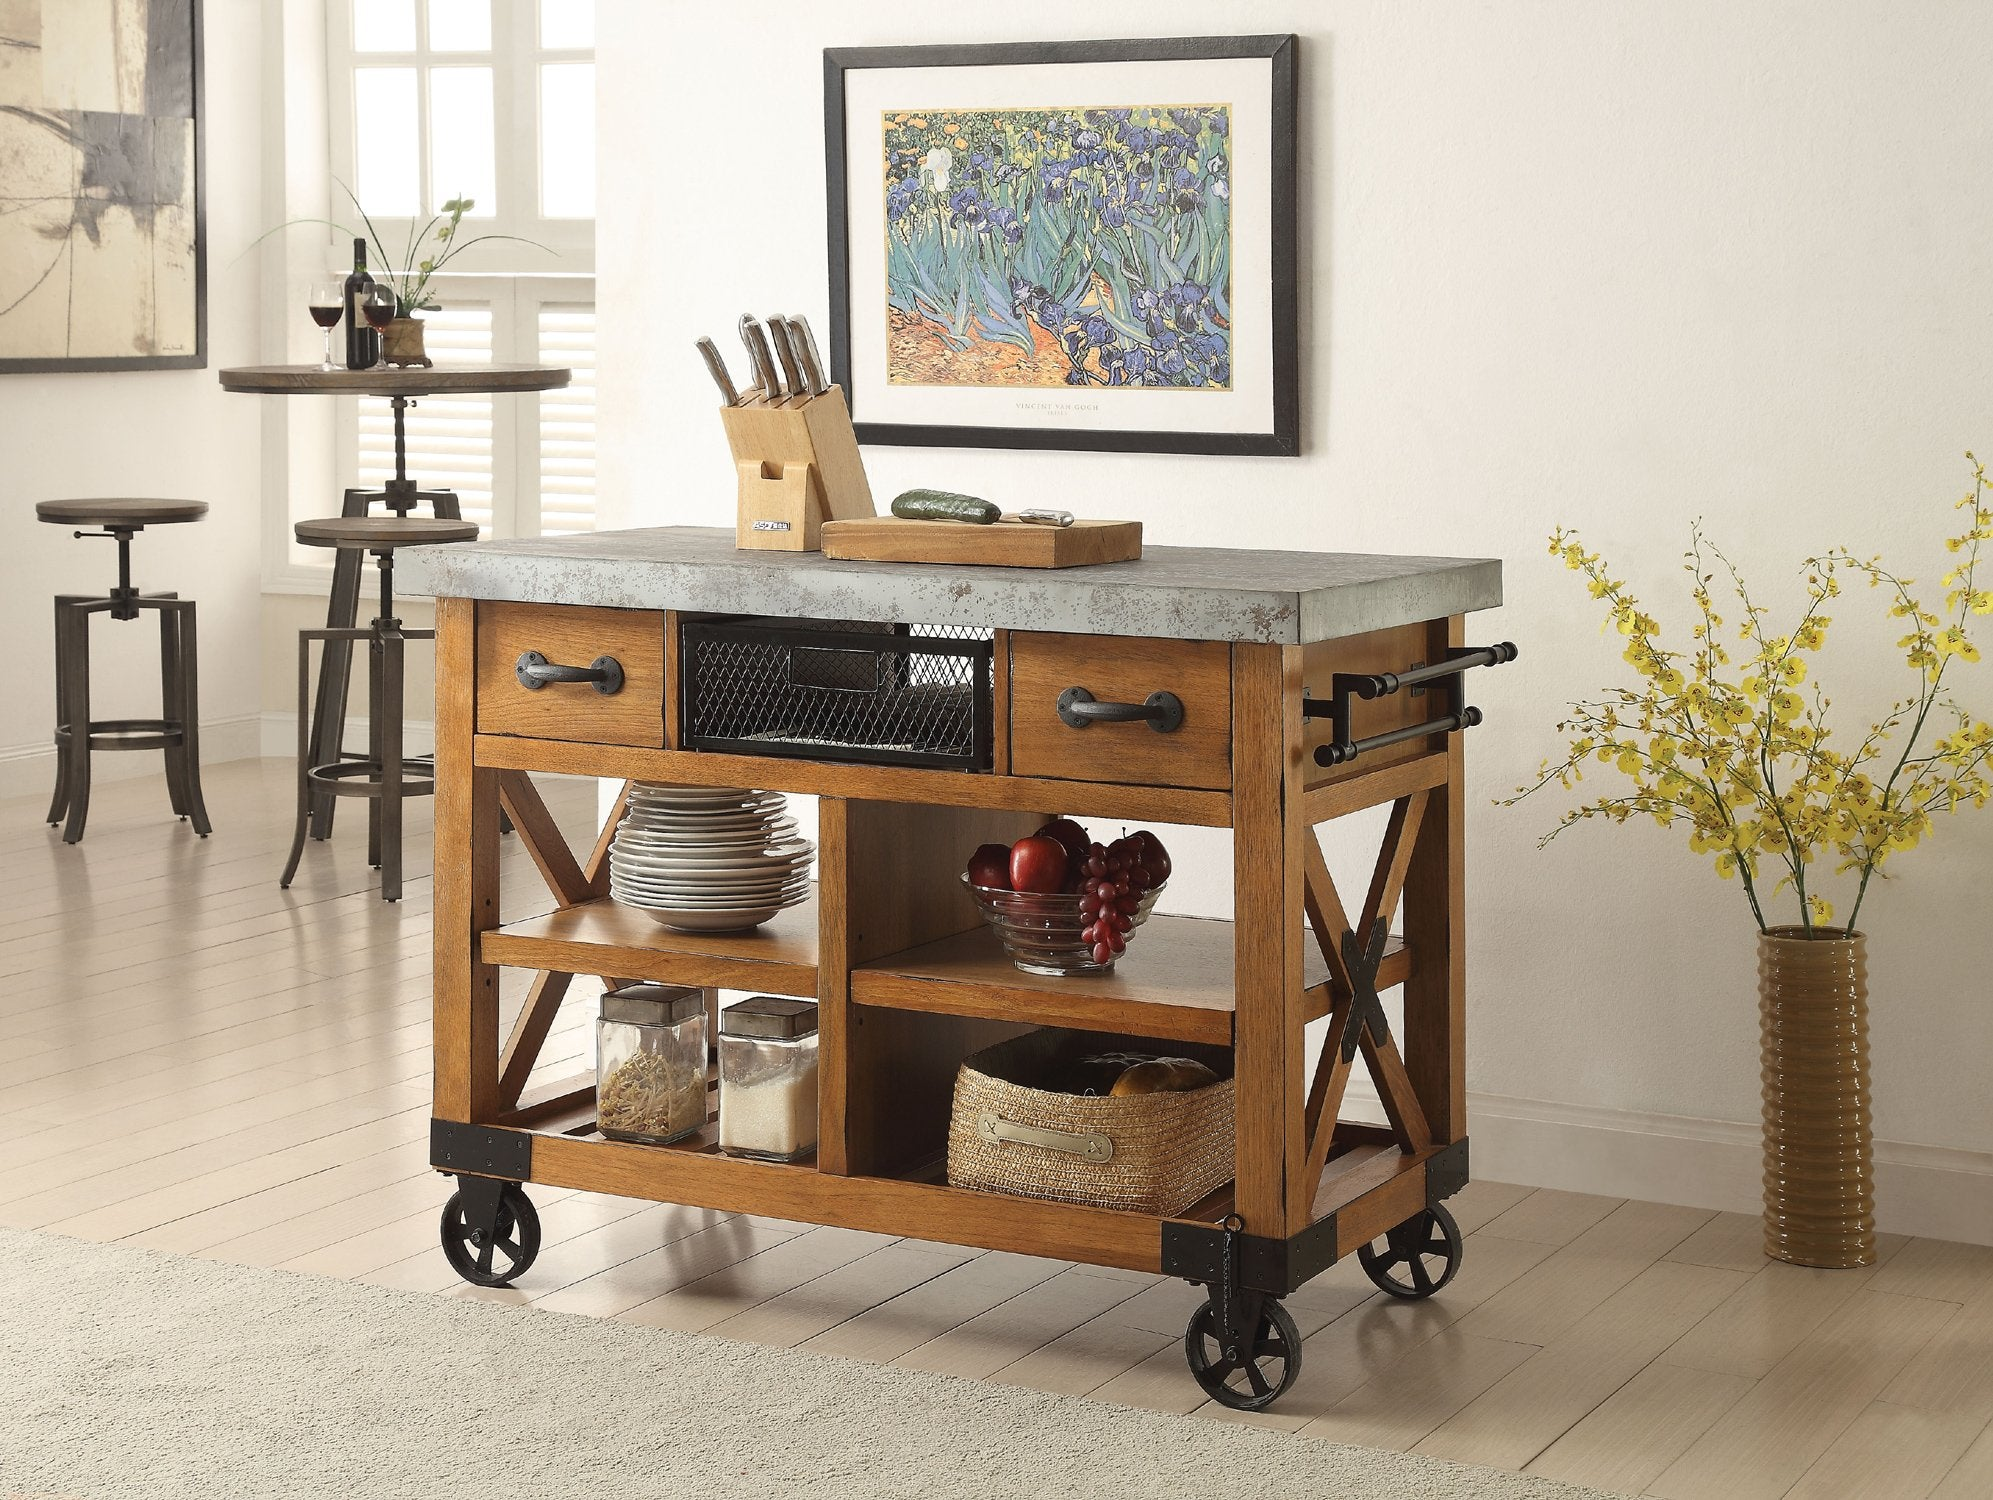 Acme 98182 Kailey Distress Oak Storage Kitchen Cart